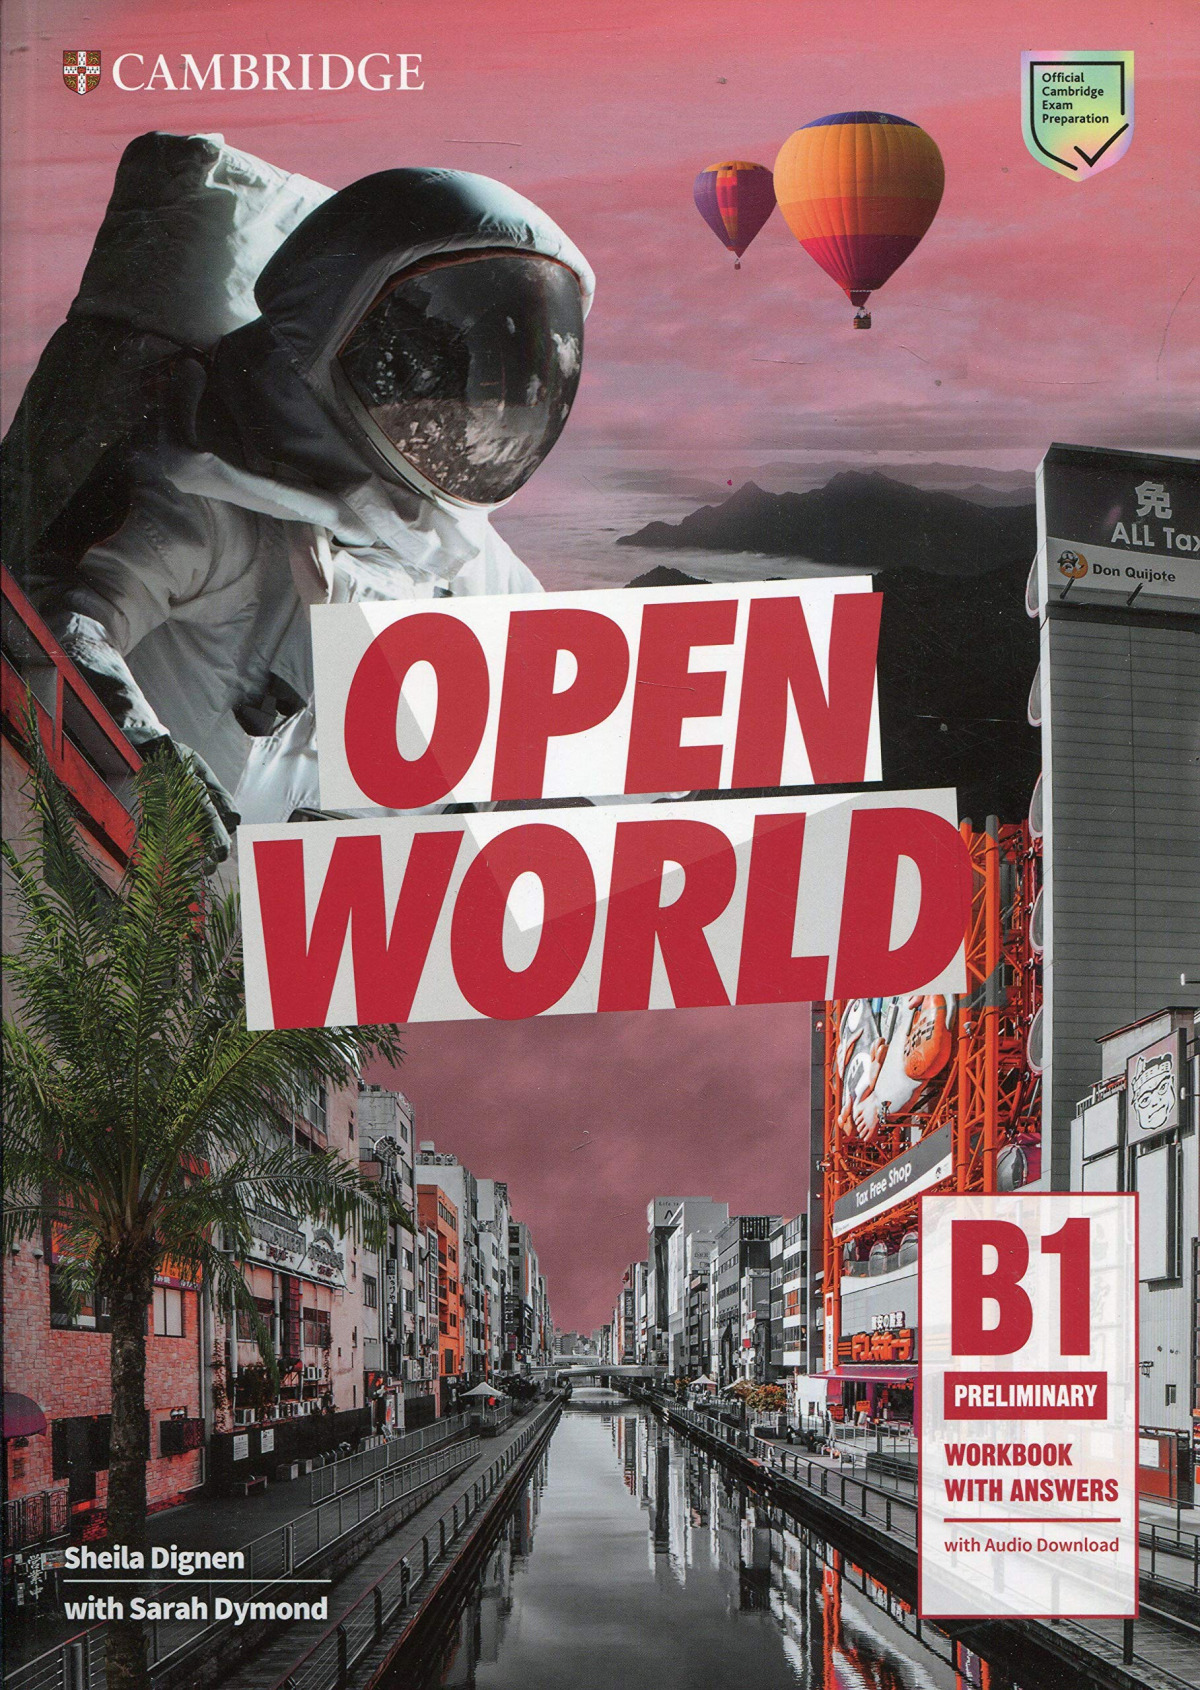 Open World Preliminary. Workbook with Answers with Audio Download.